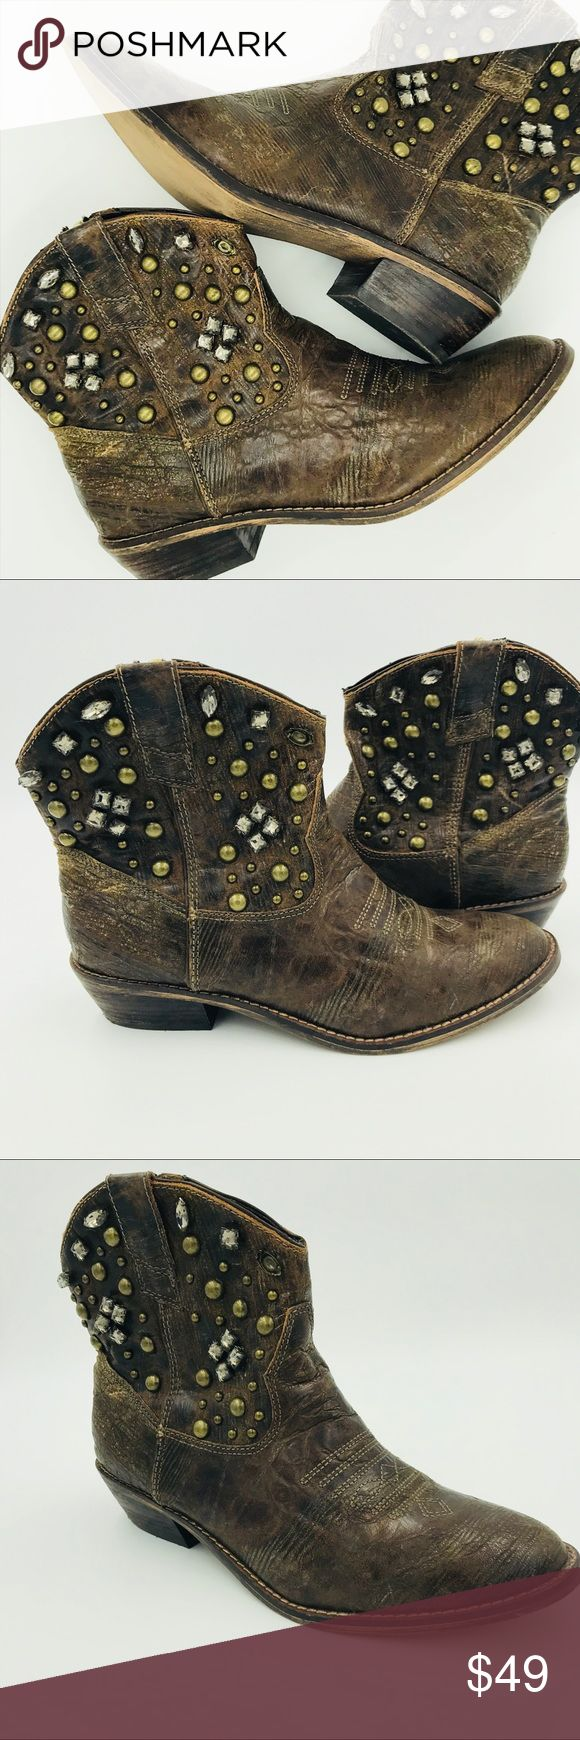 🆕🍂📝Steve Madden Broncco Bootie with rhinestones Adorable rhinestone cowgirl leather bootie. Perfect with jeans, leggings, or a skirt. The look of these boots is supposed to be worn. There's some peeling inside one boot (see pic), otherwise is great pre-owned condition. Size 7.5. Steve Madden Shoes Ankle Boots & Booties